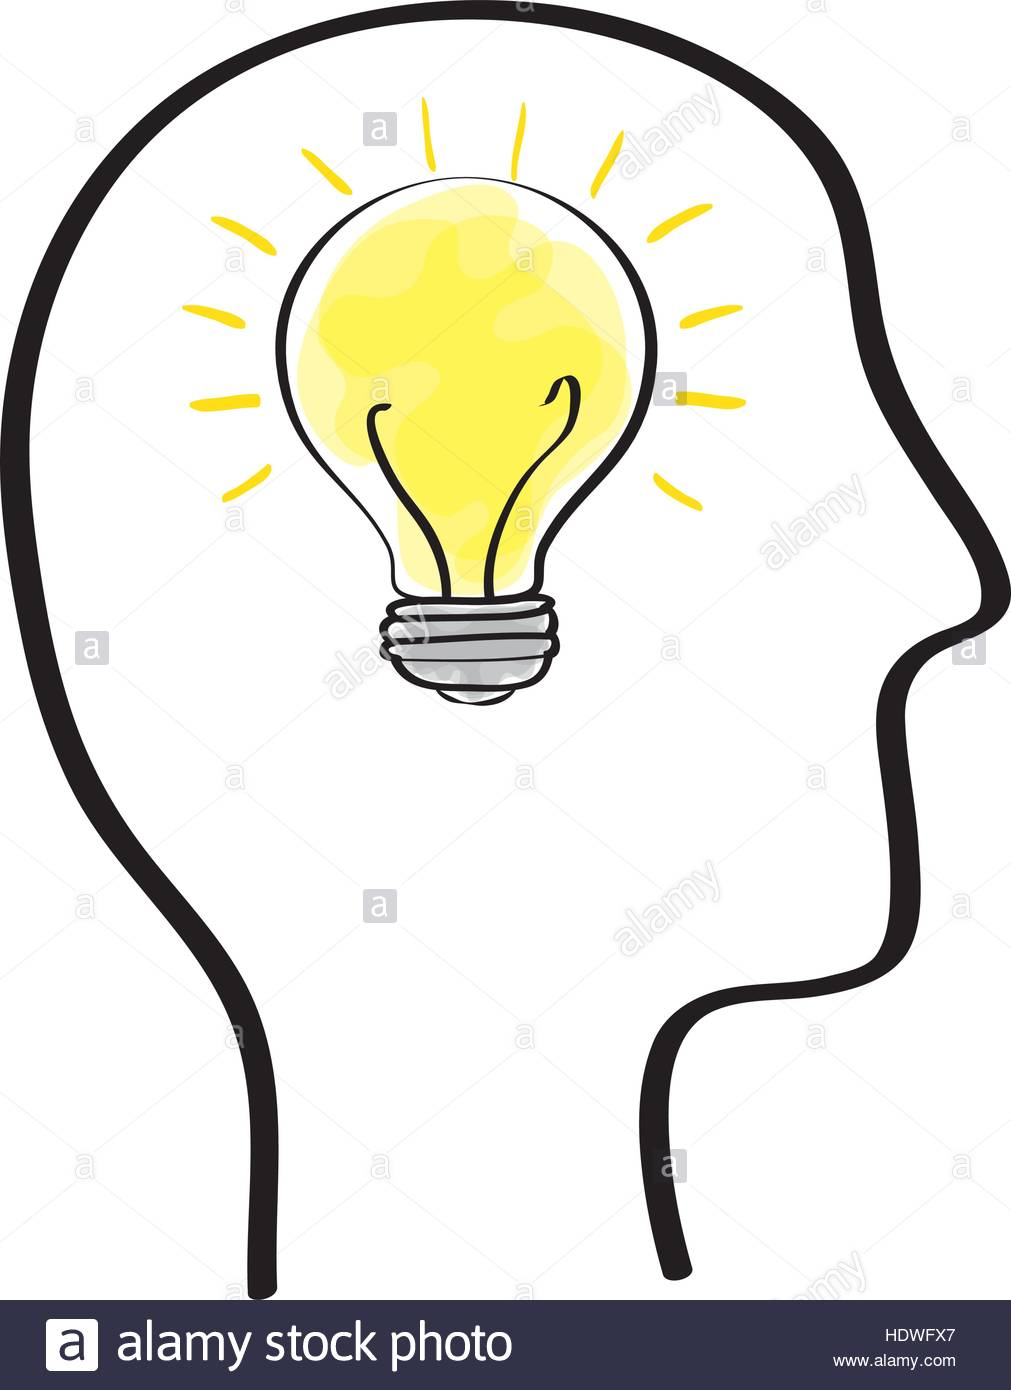 1011x1390 Human Head With Bulb Inside Icon Vector Illustration Graphic